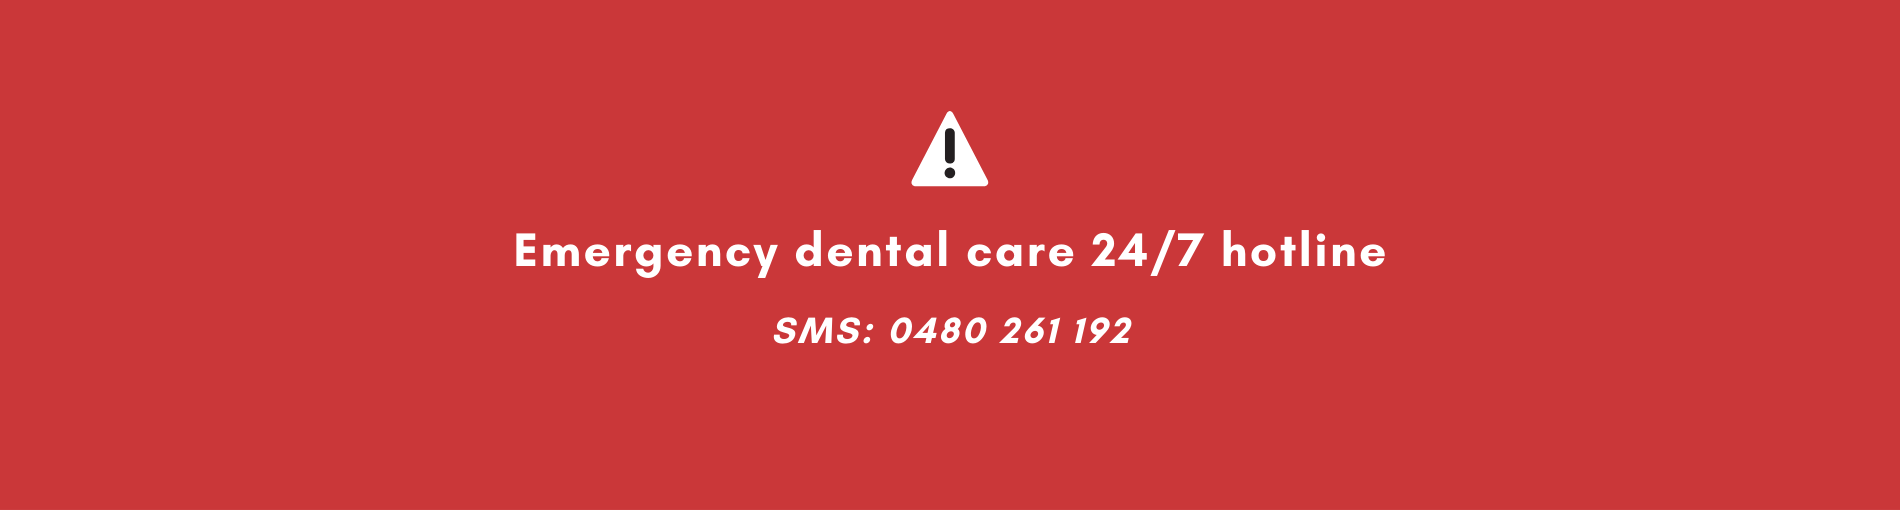 Introducing Central Coast Dental Emergency Service